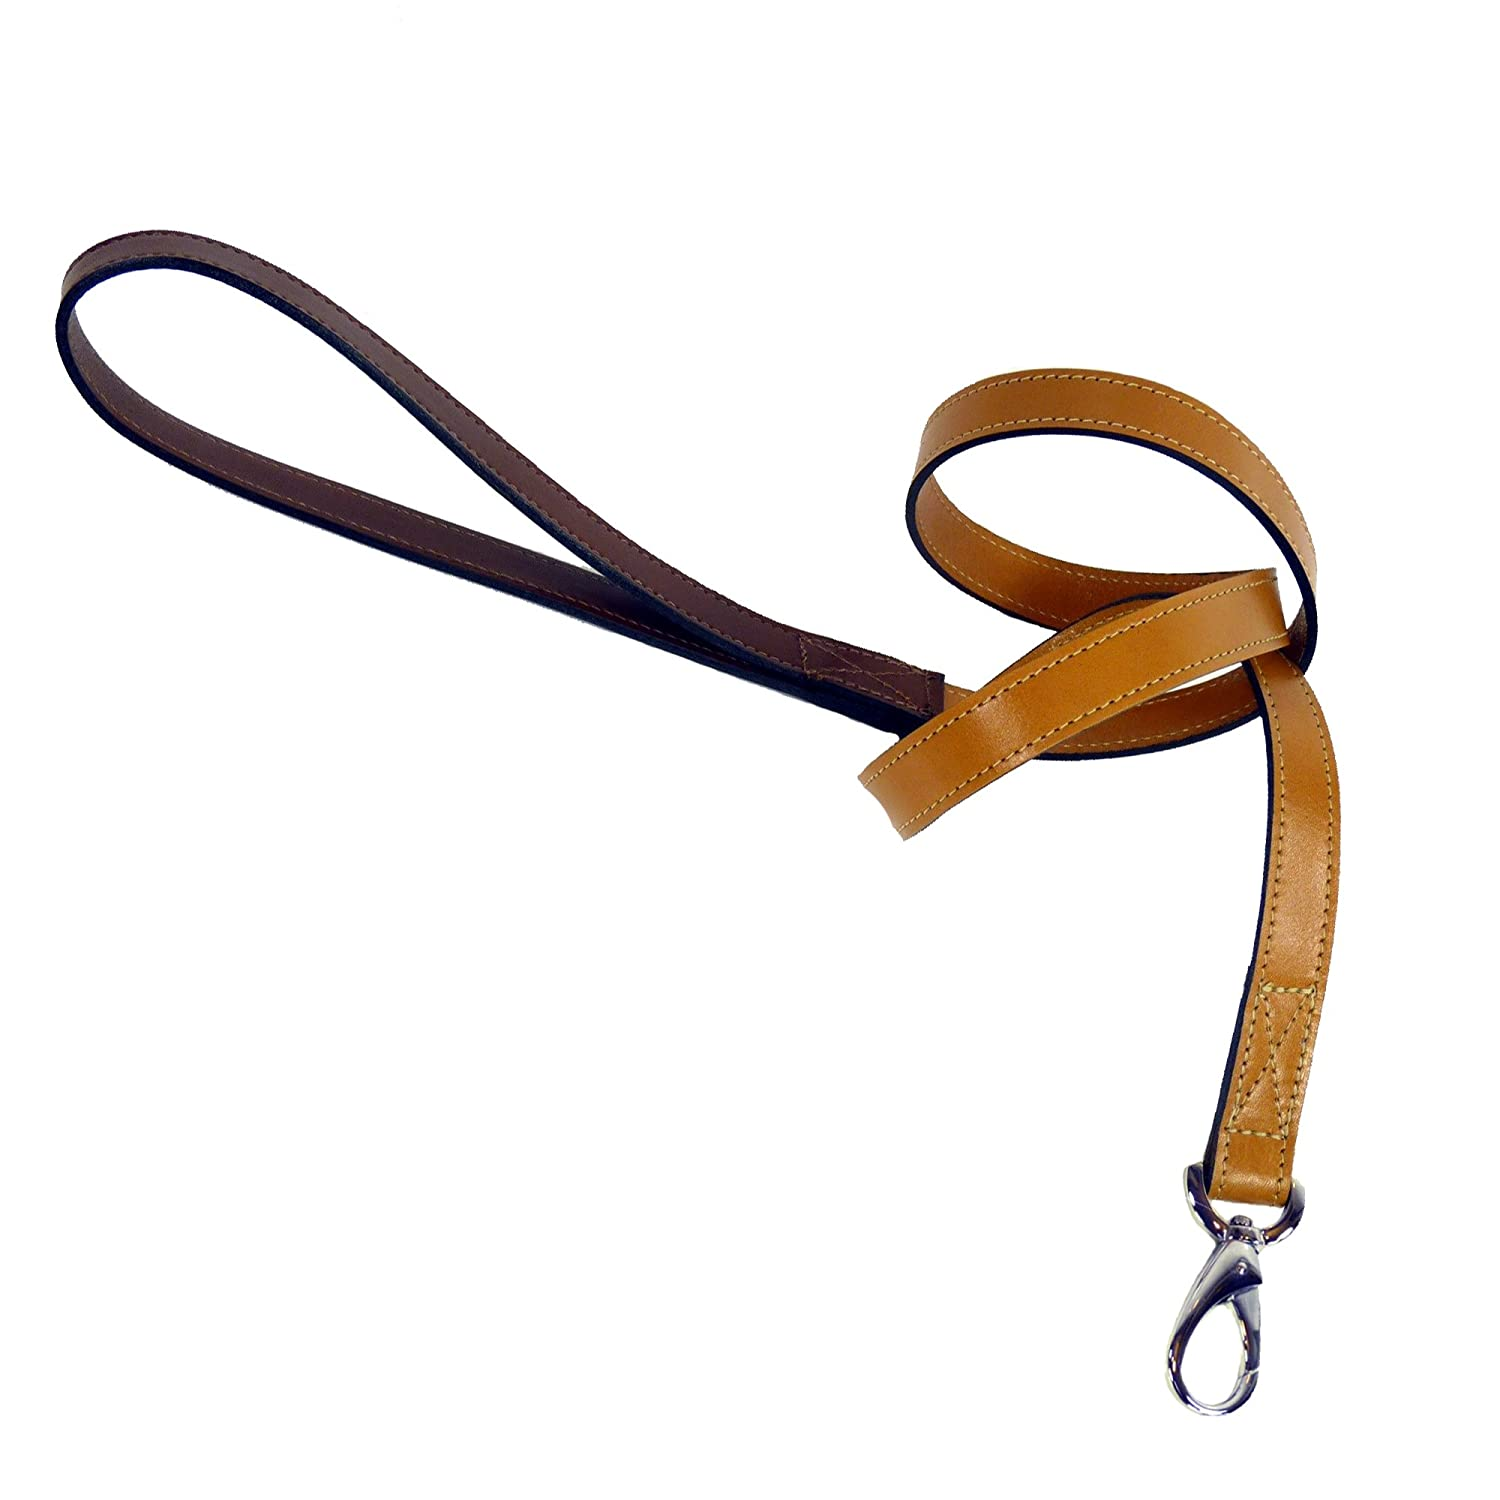 Hartman & pink 6031 Hartman Dog Lead, 3 4-Inch, Tan with Papaya Handle